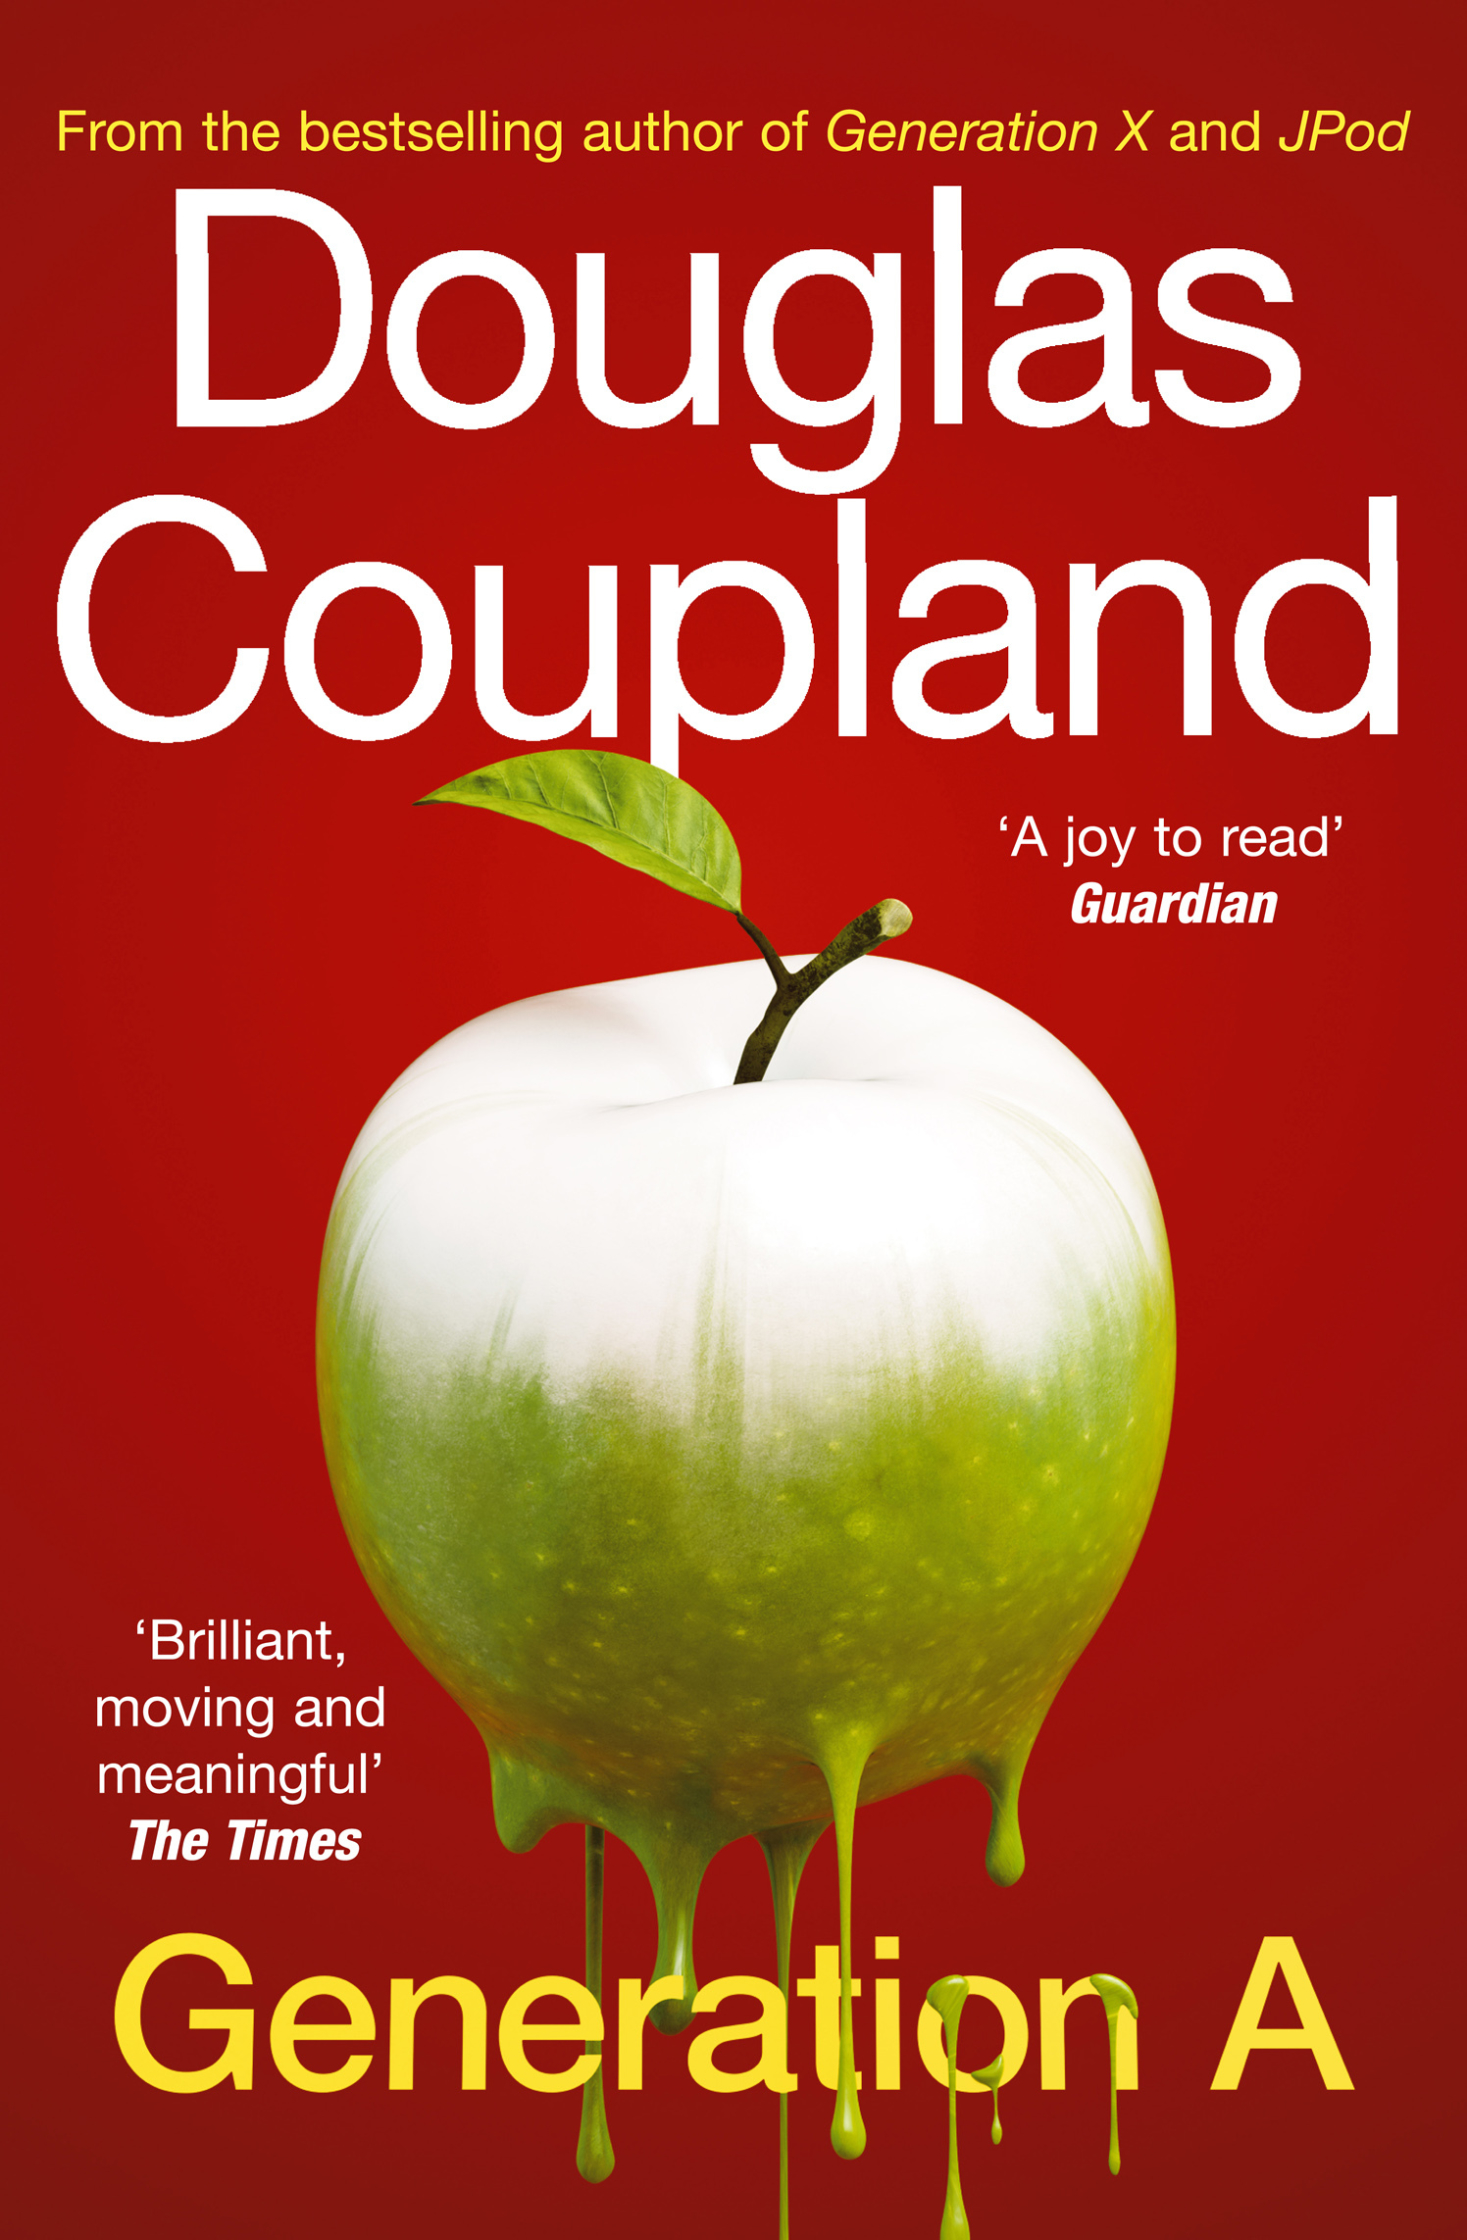 Douglas Coupland - Generation A Cover